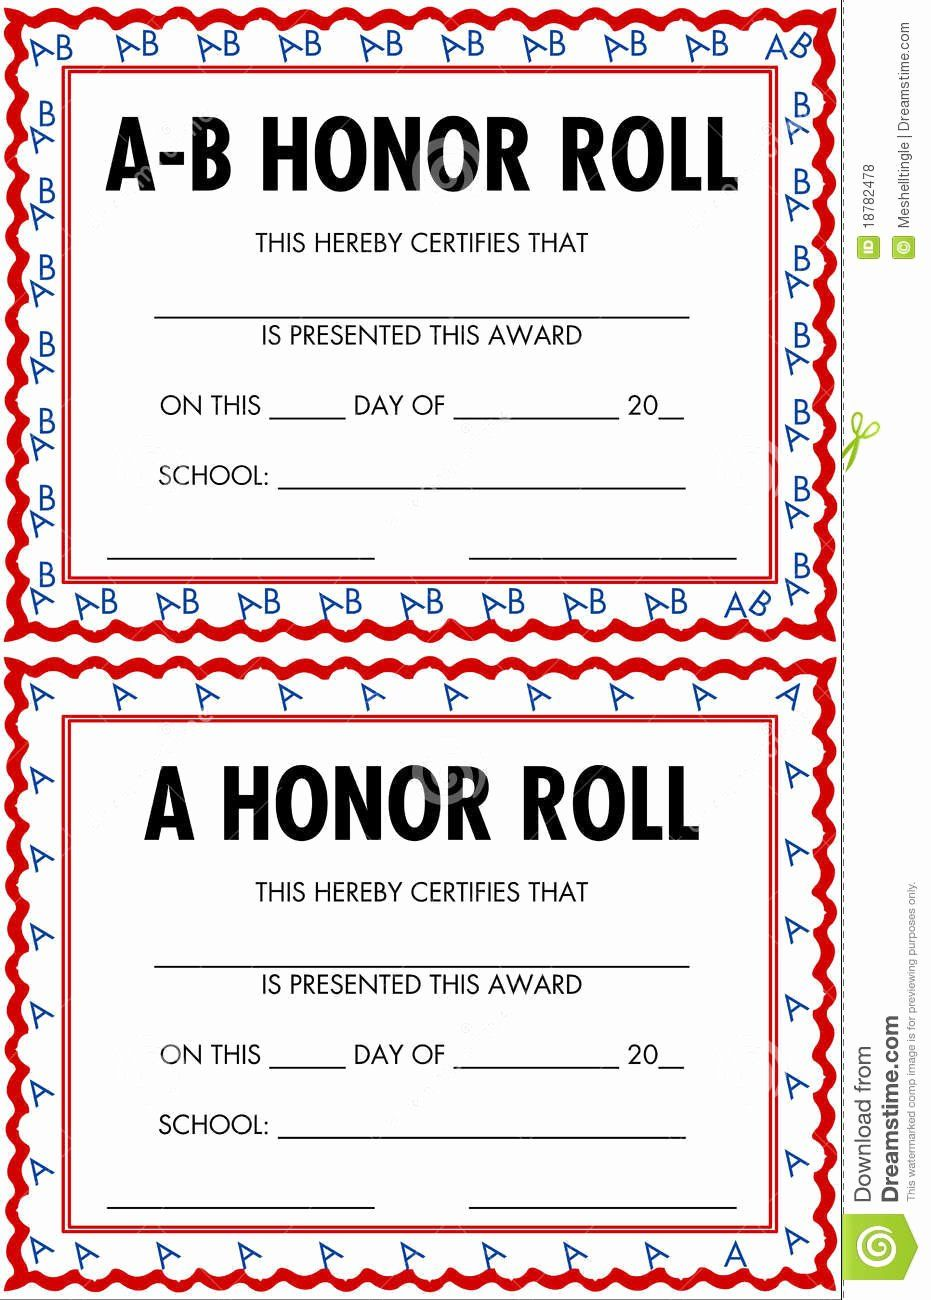 Ab Honor Roll Certificate Template Best Of Honor Roll Certificates Royalty Free Stock S Image Dannybarr Honor Roll Certificate Templates Certificate Template